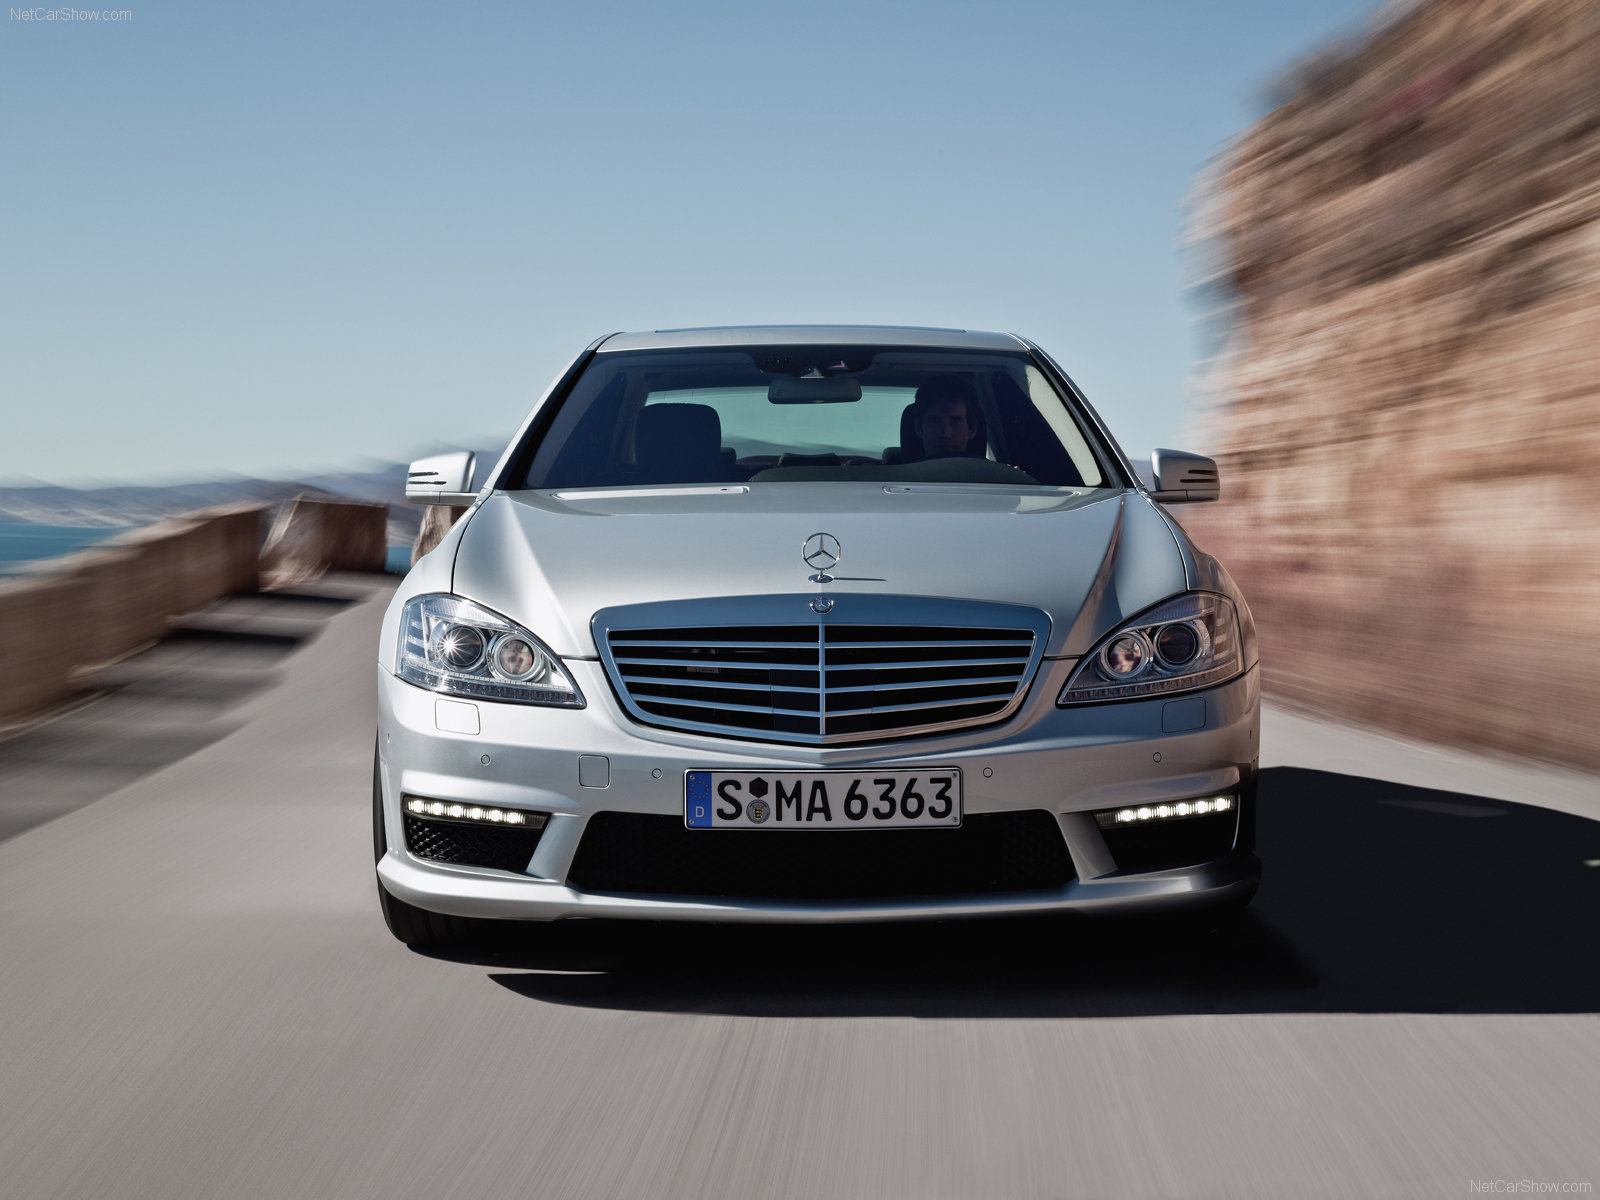 Mercedes benz s class amg photos photogallery with 60 for Mercedes benz s500 amg